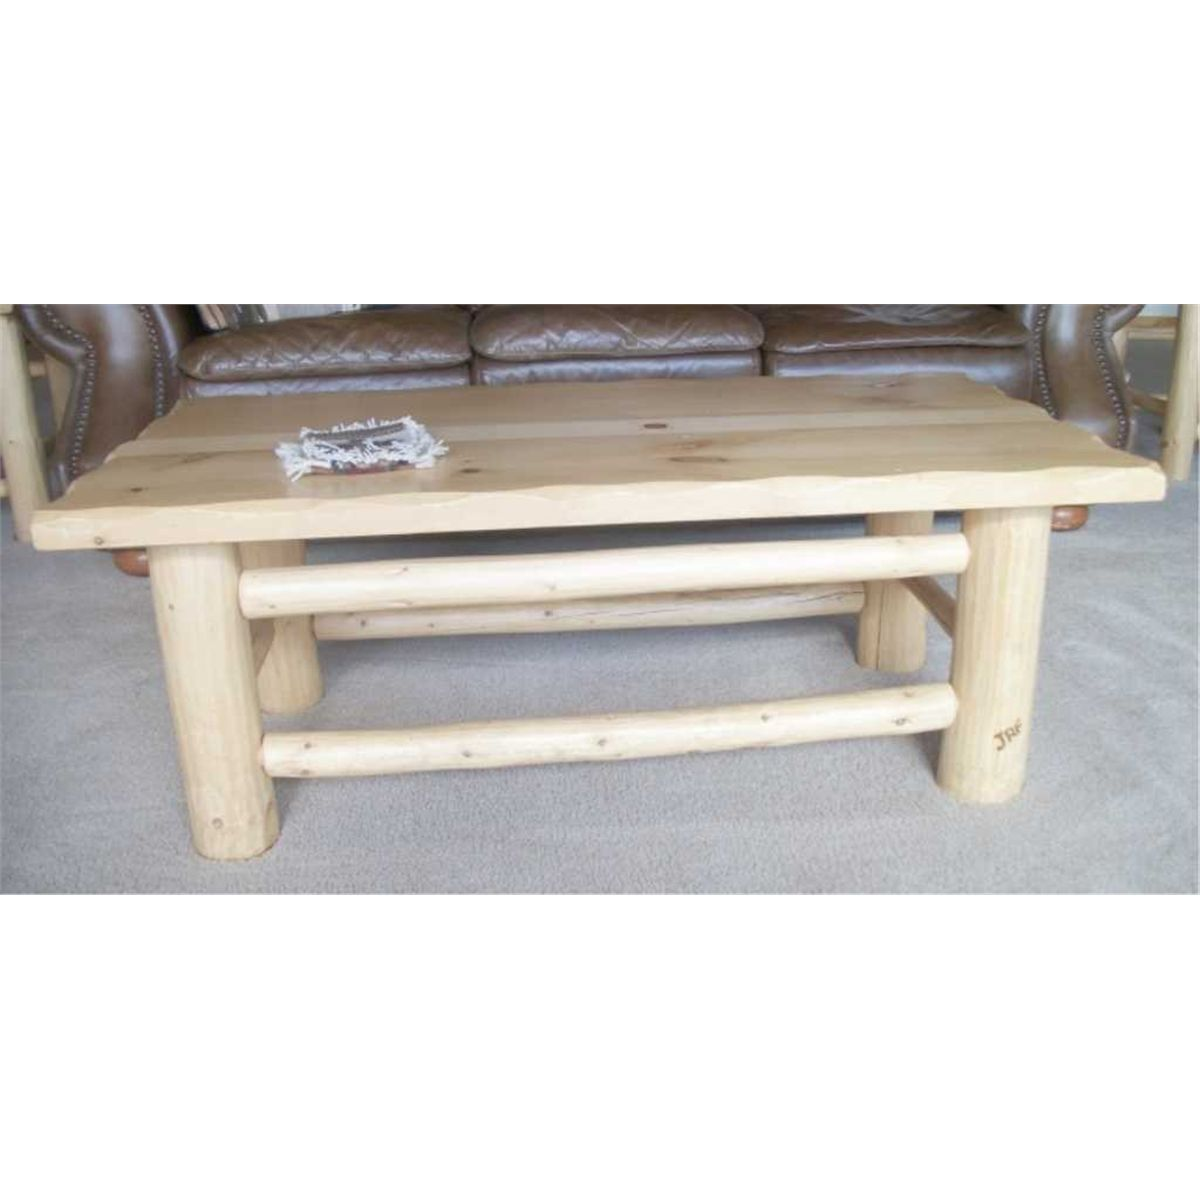 Log living room table set no internet bids on these items for Living room no coffee table